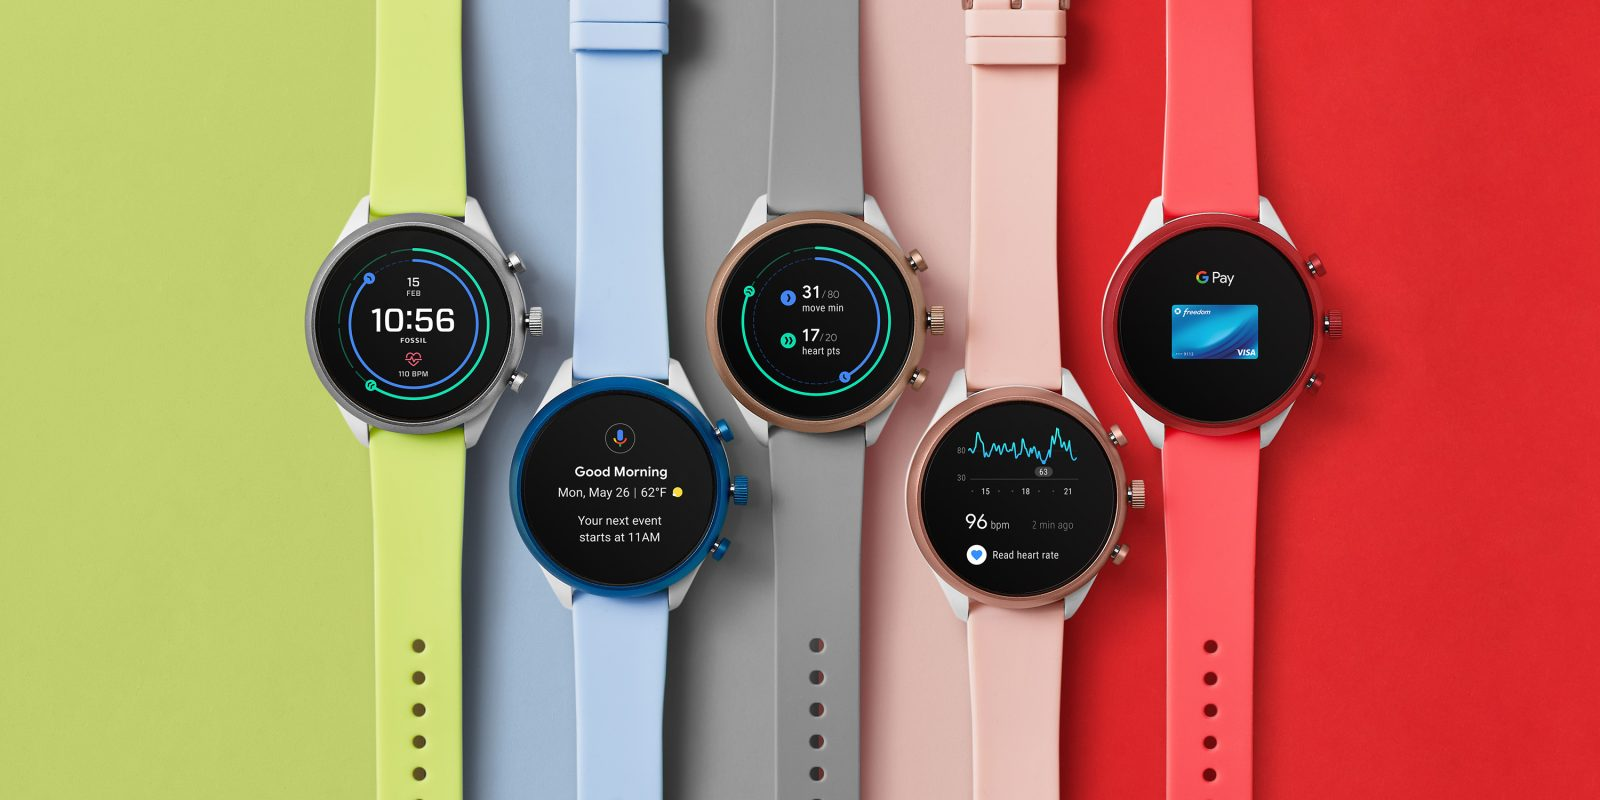 Fossil Sport brings Snapdragon Wear 3100 for $255 - 9to5Google